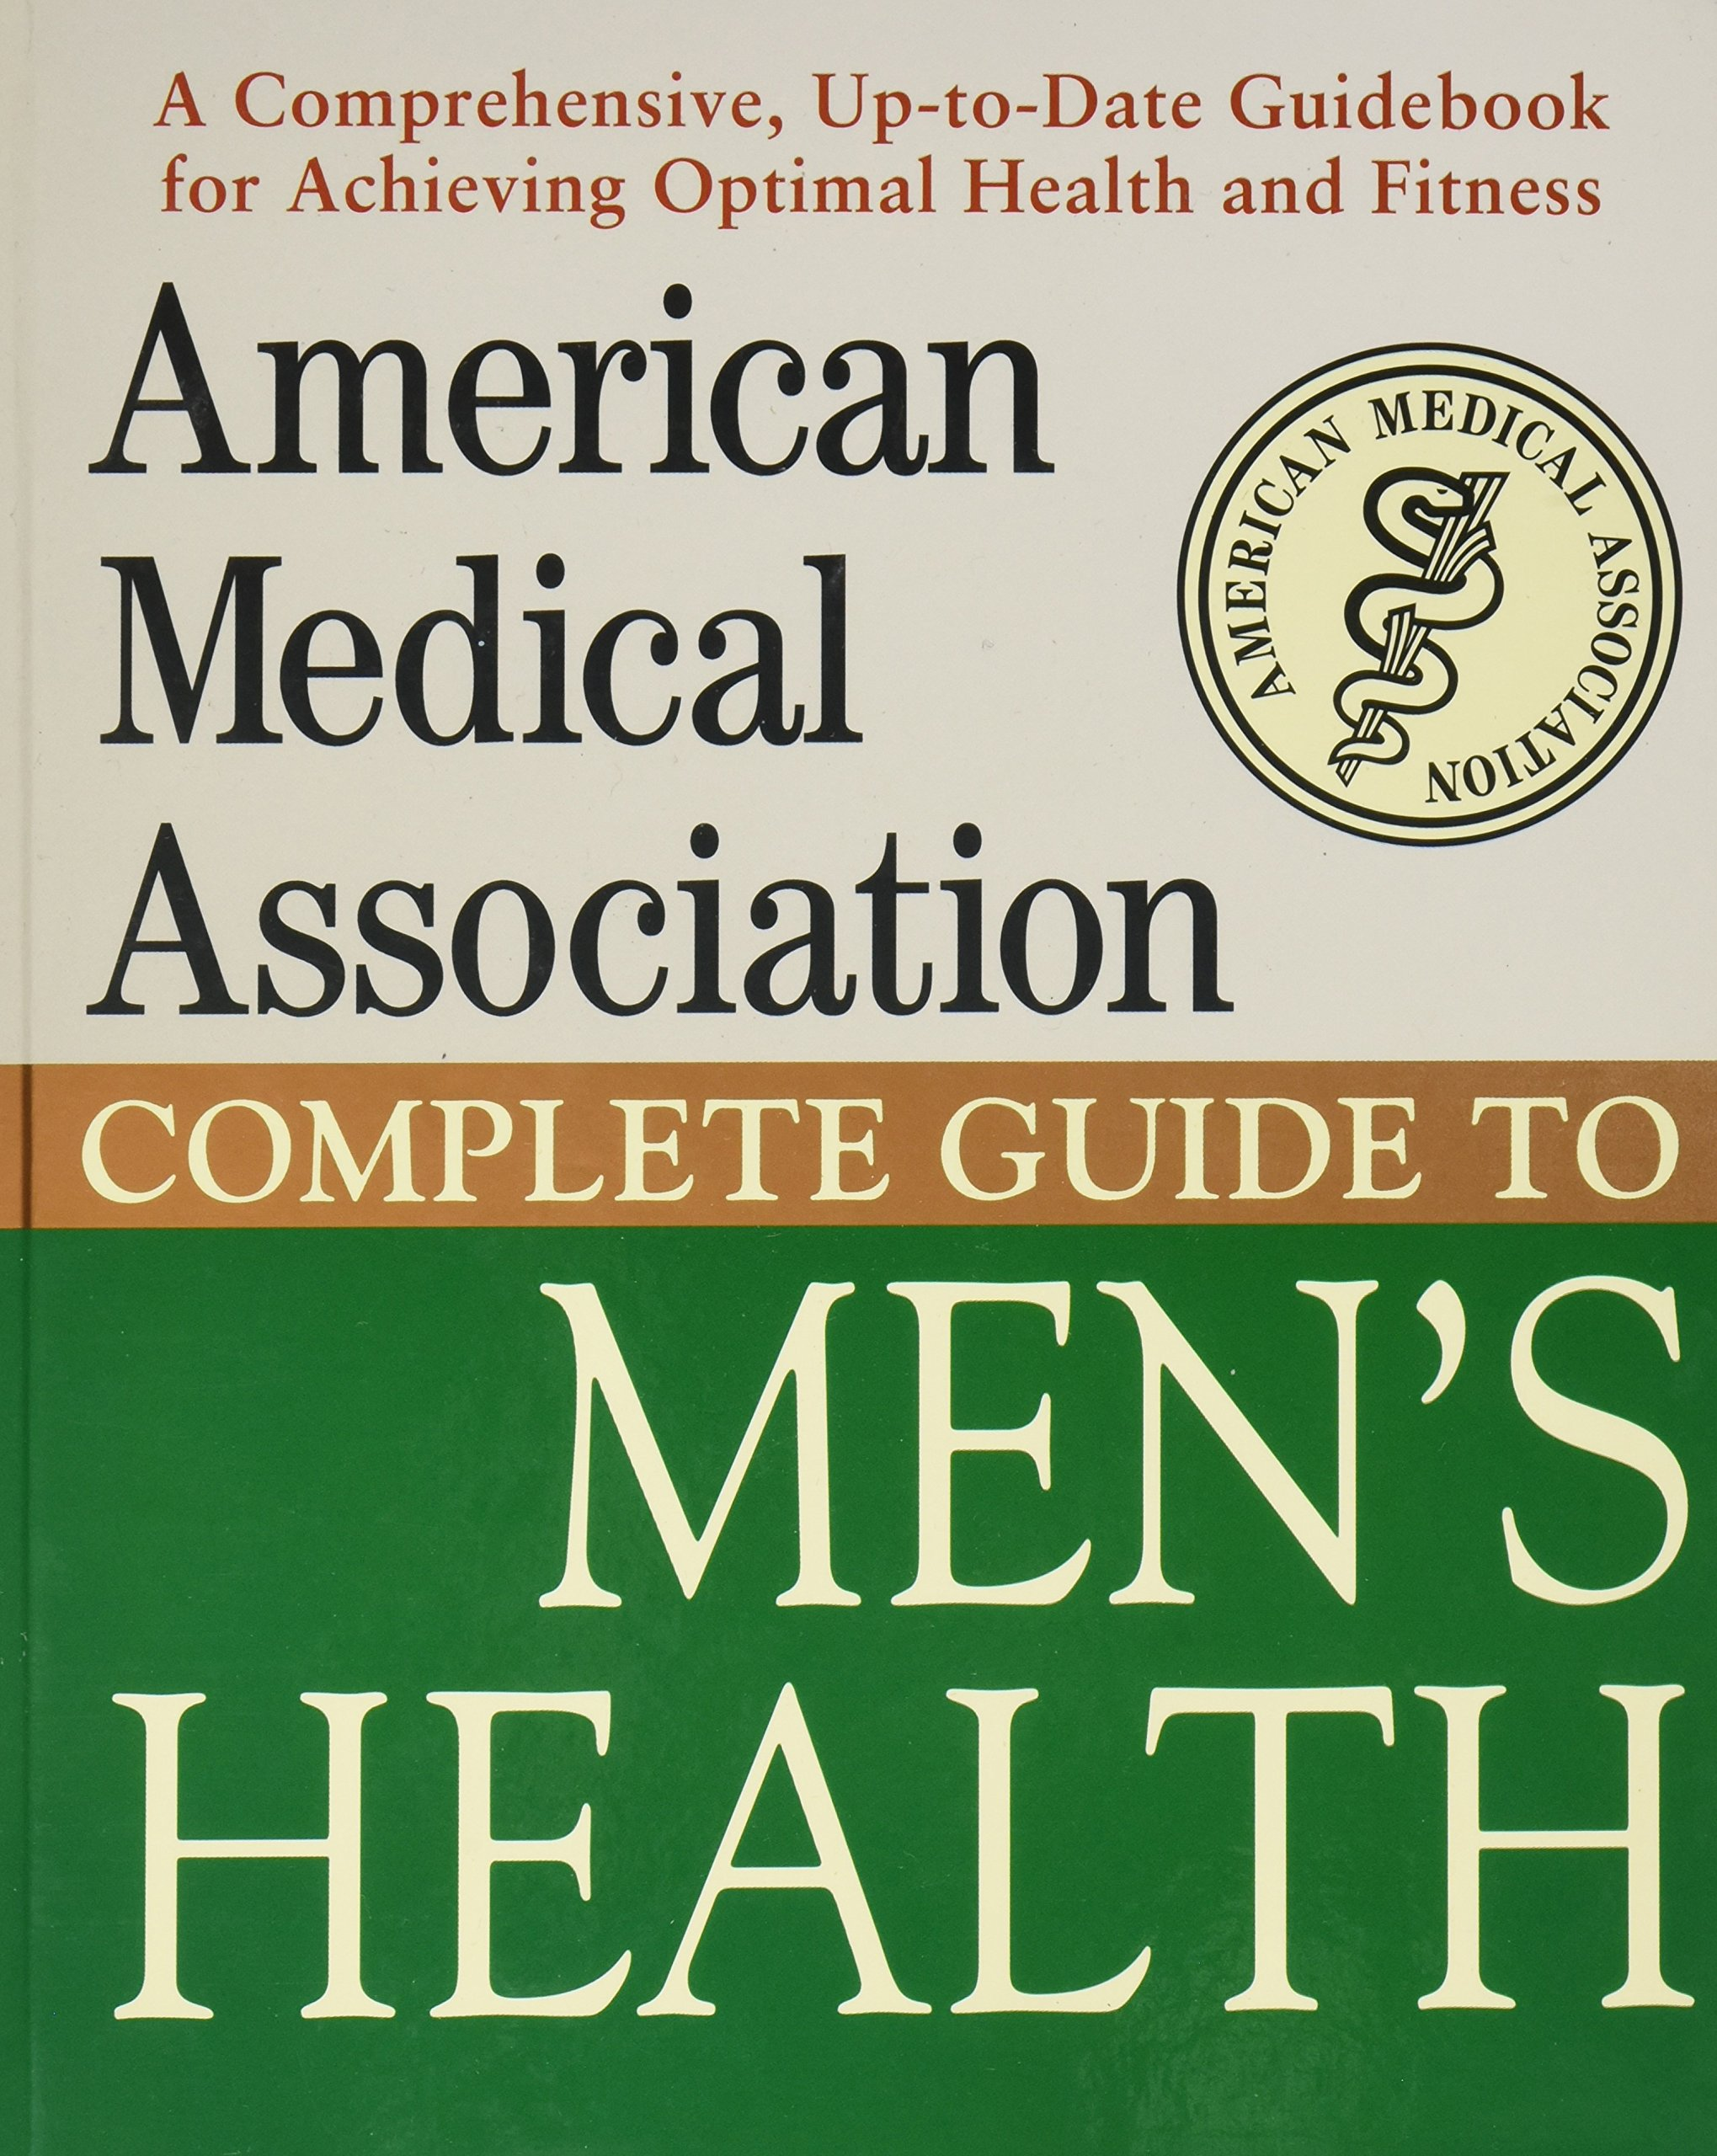 Complete Guide to Men's Health (AMERICAN MEDICAL ASSOCIATION) PDF